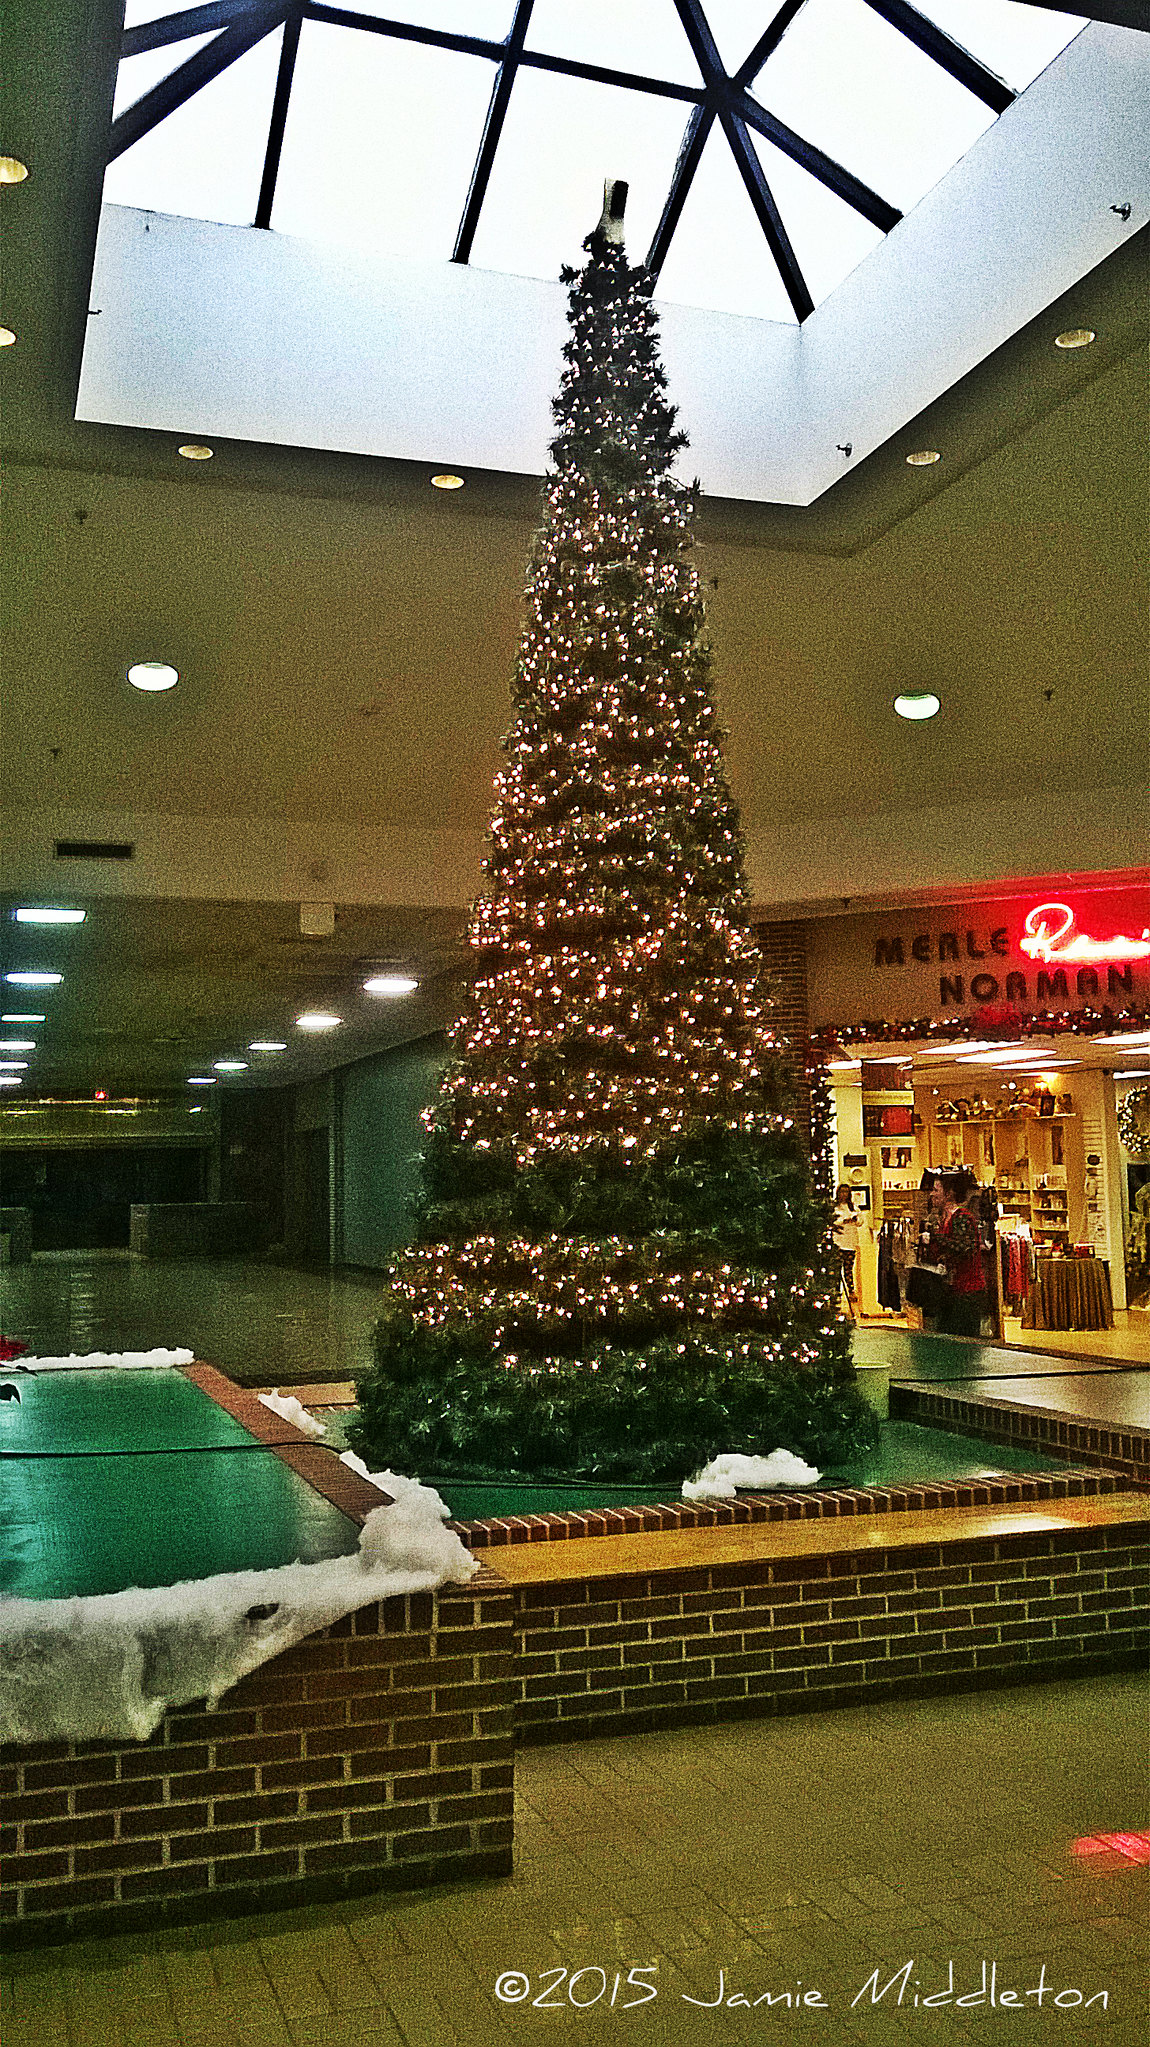 Merry Christmas From Village Center Mall